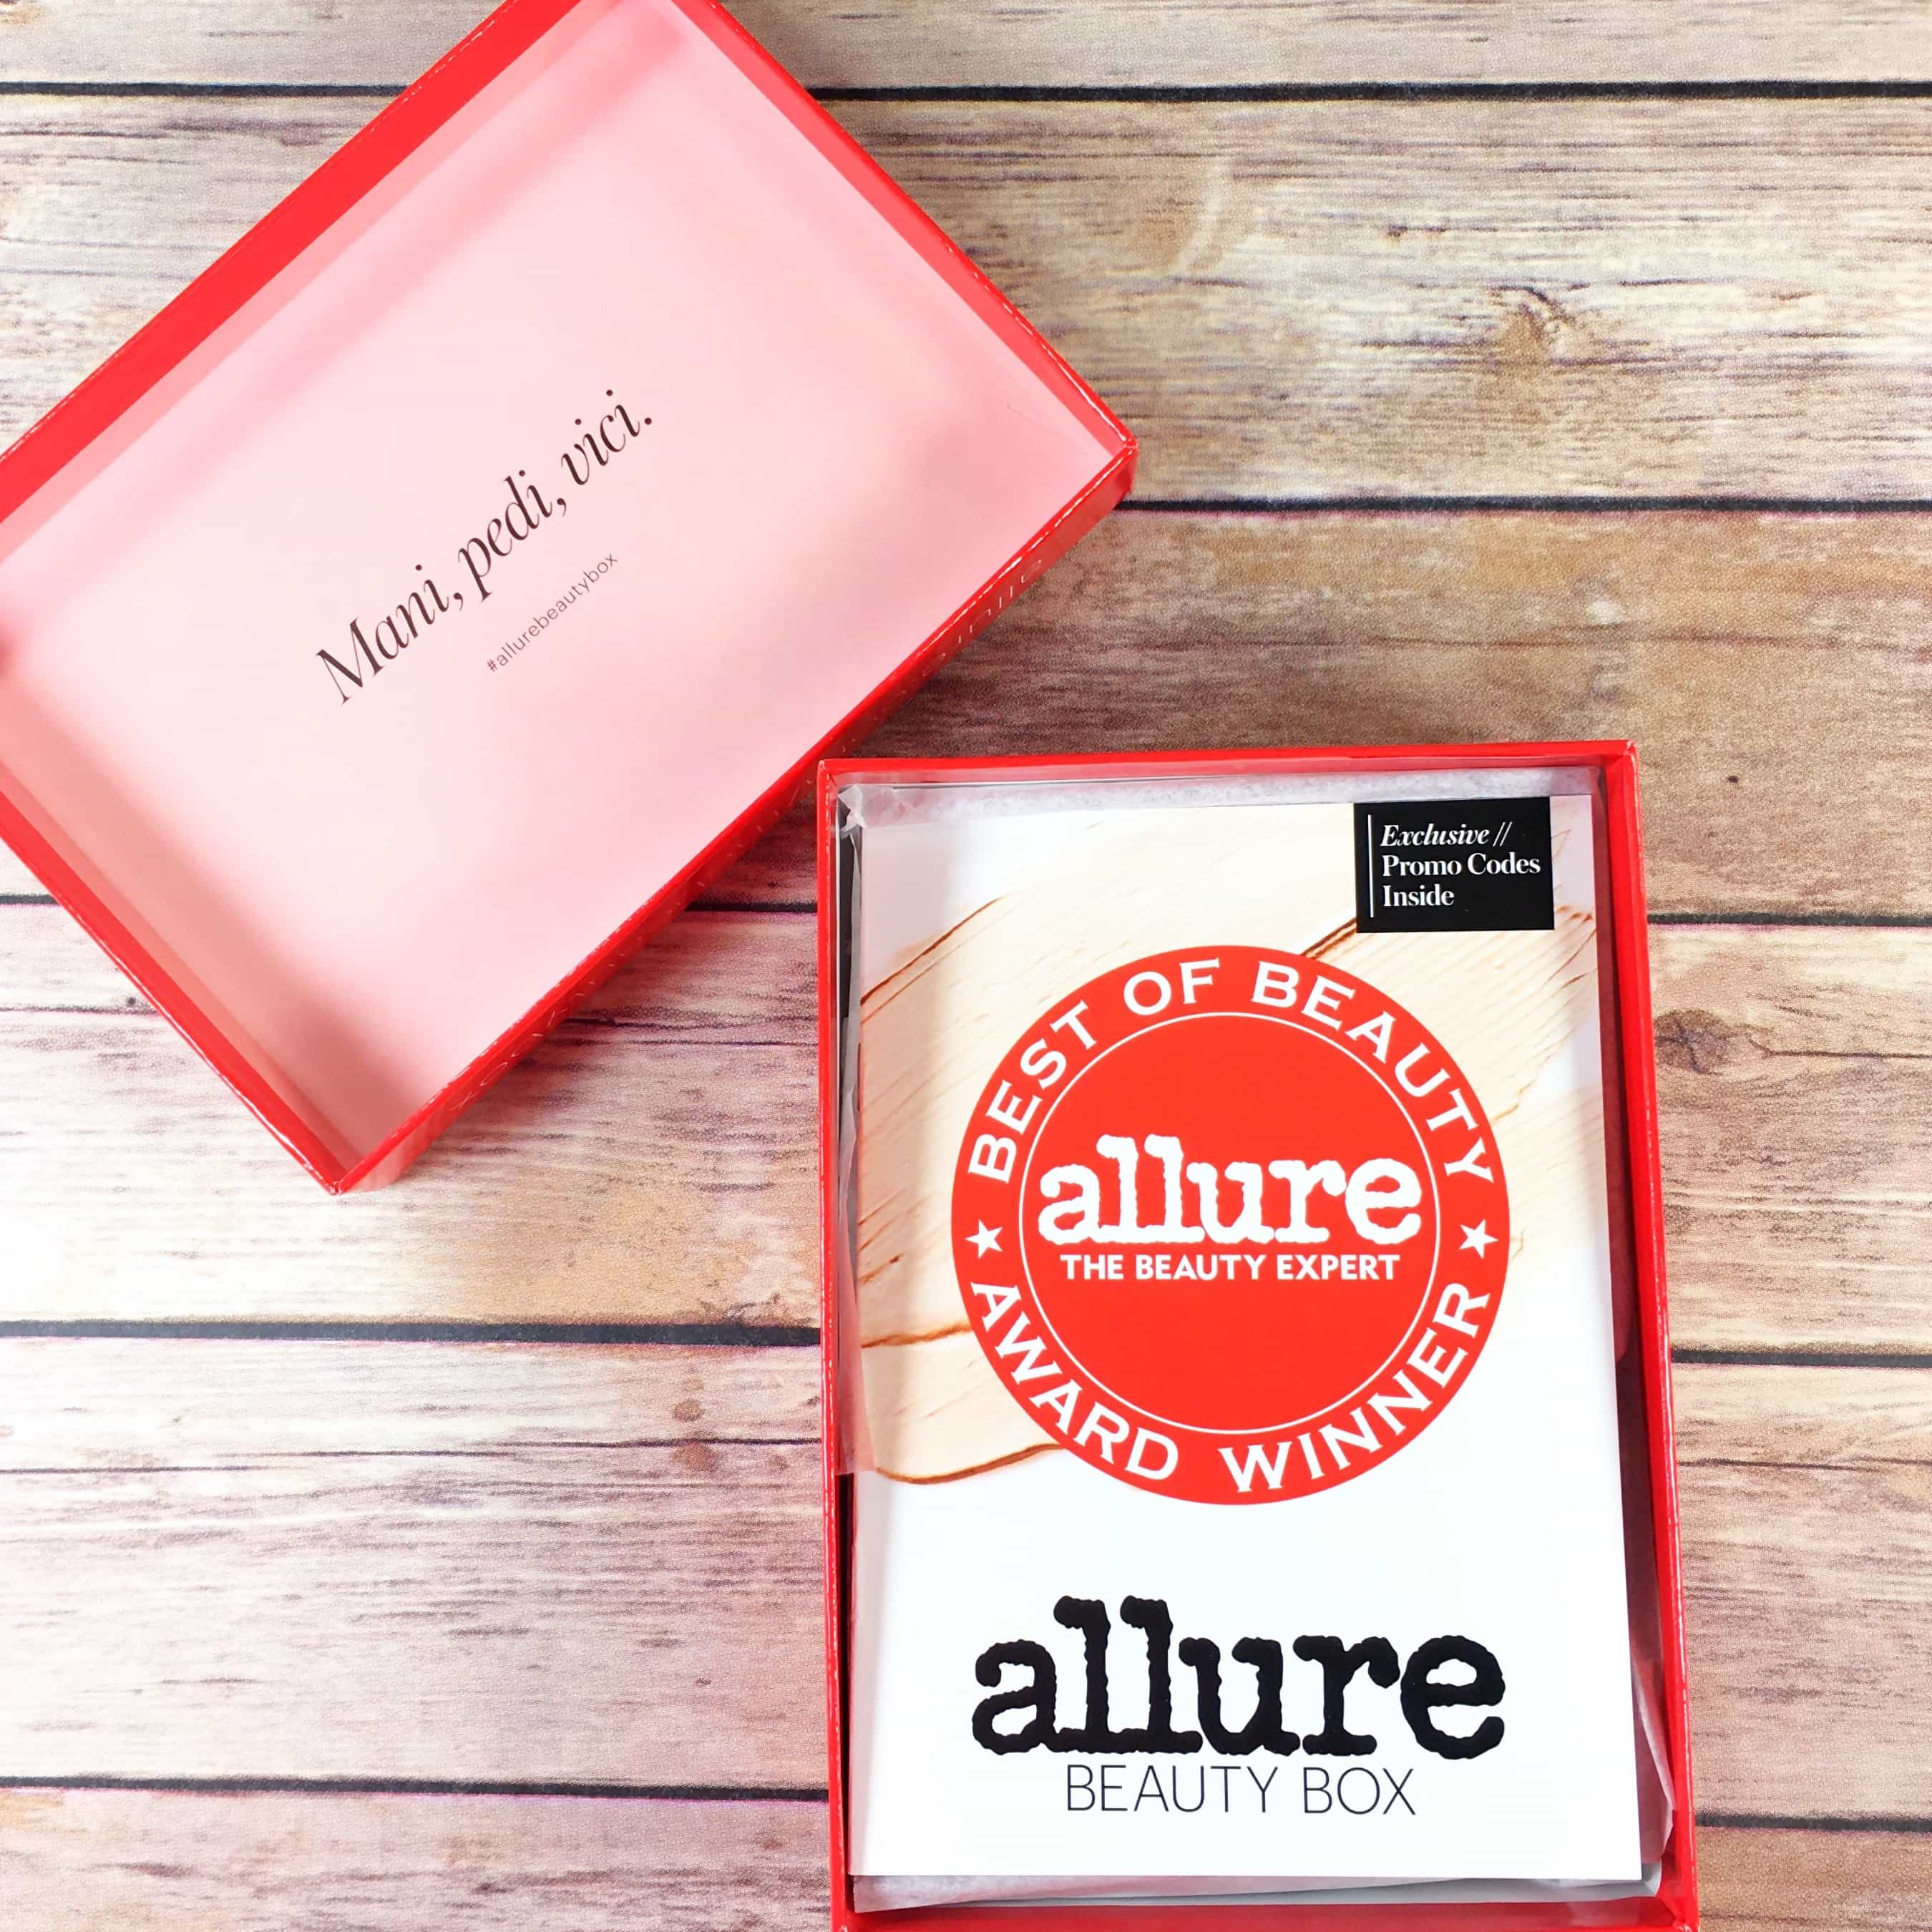 Allure Beauty Box September 2017 Subscription Box Review & Coupon